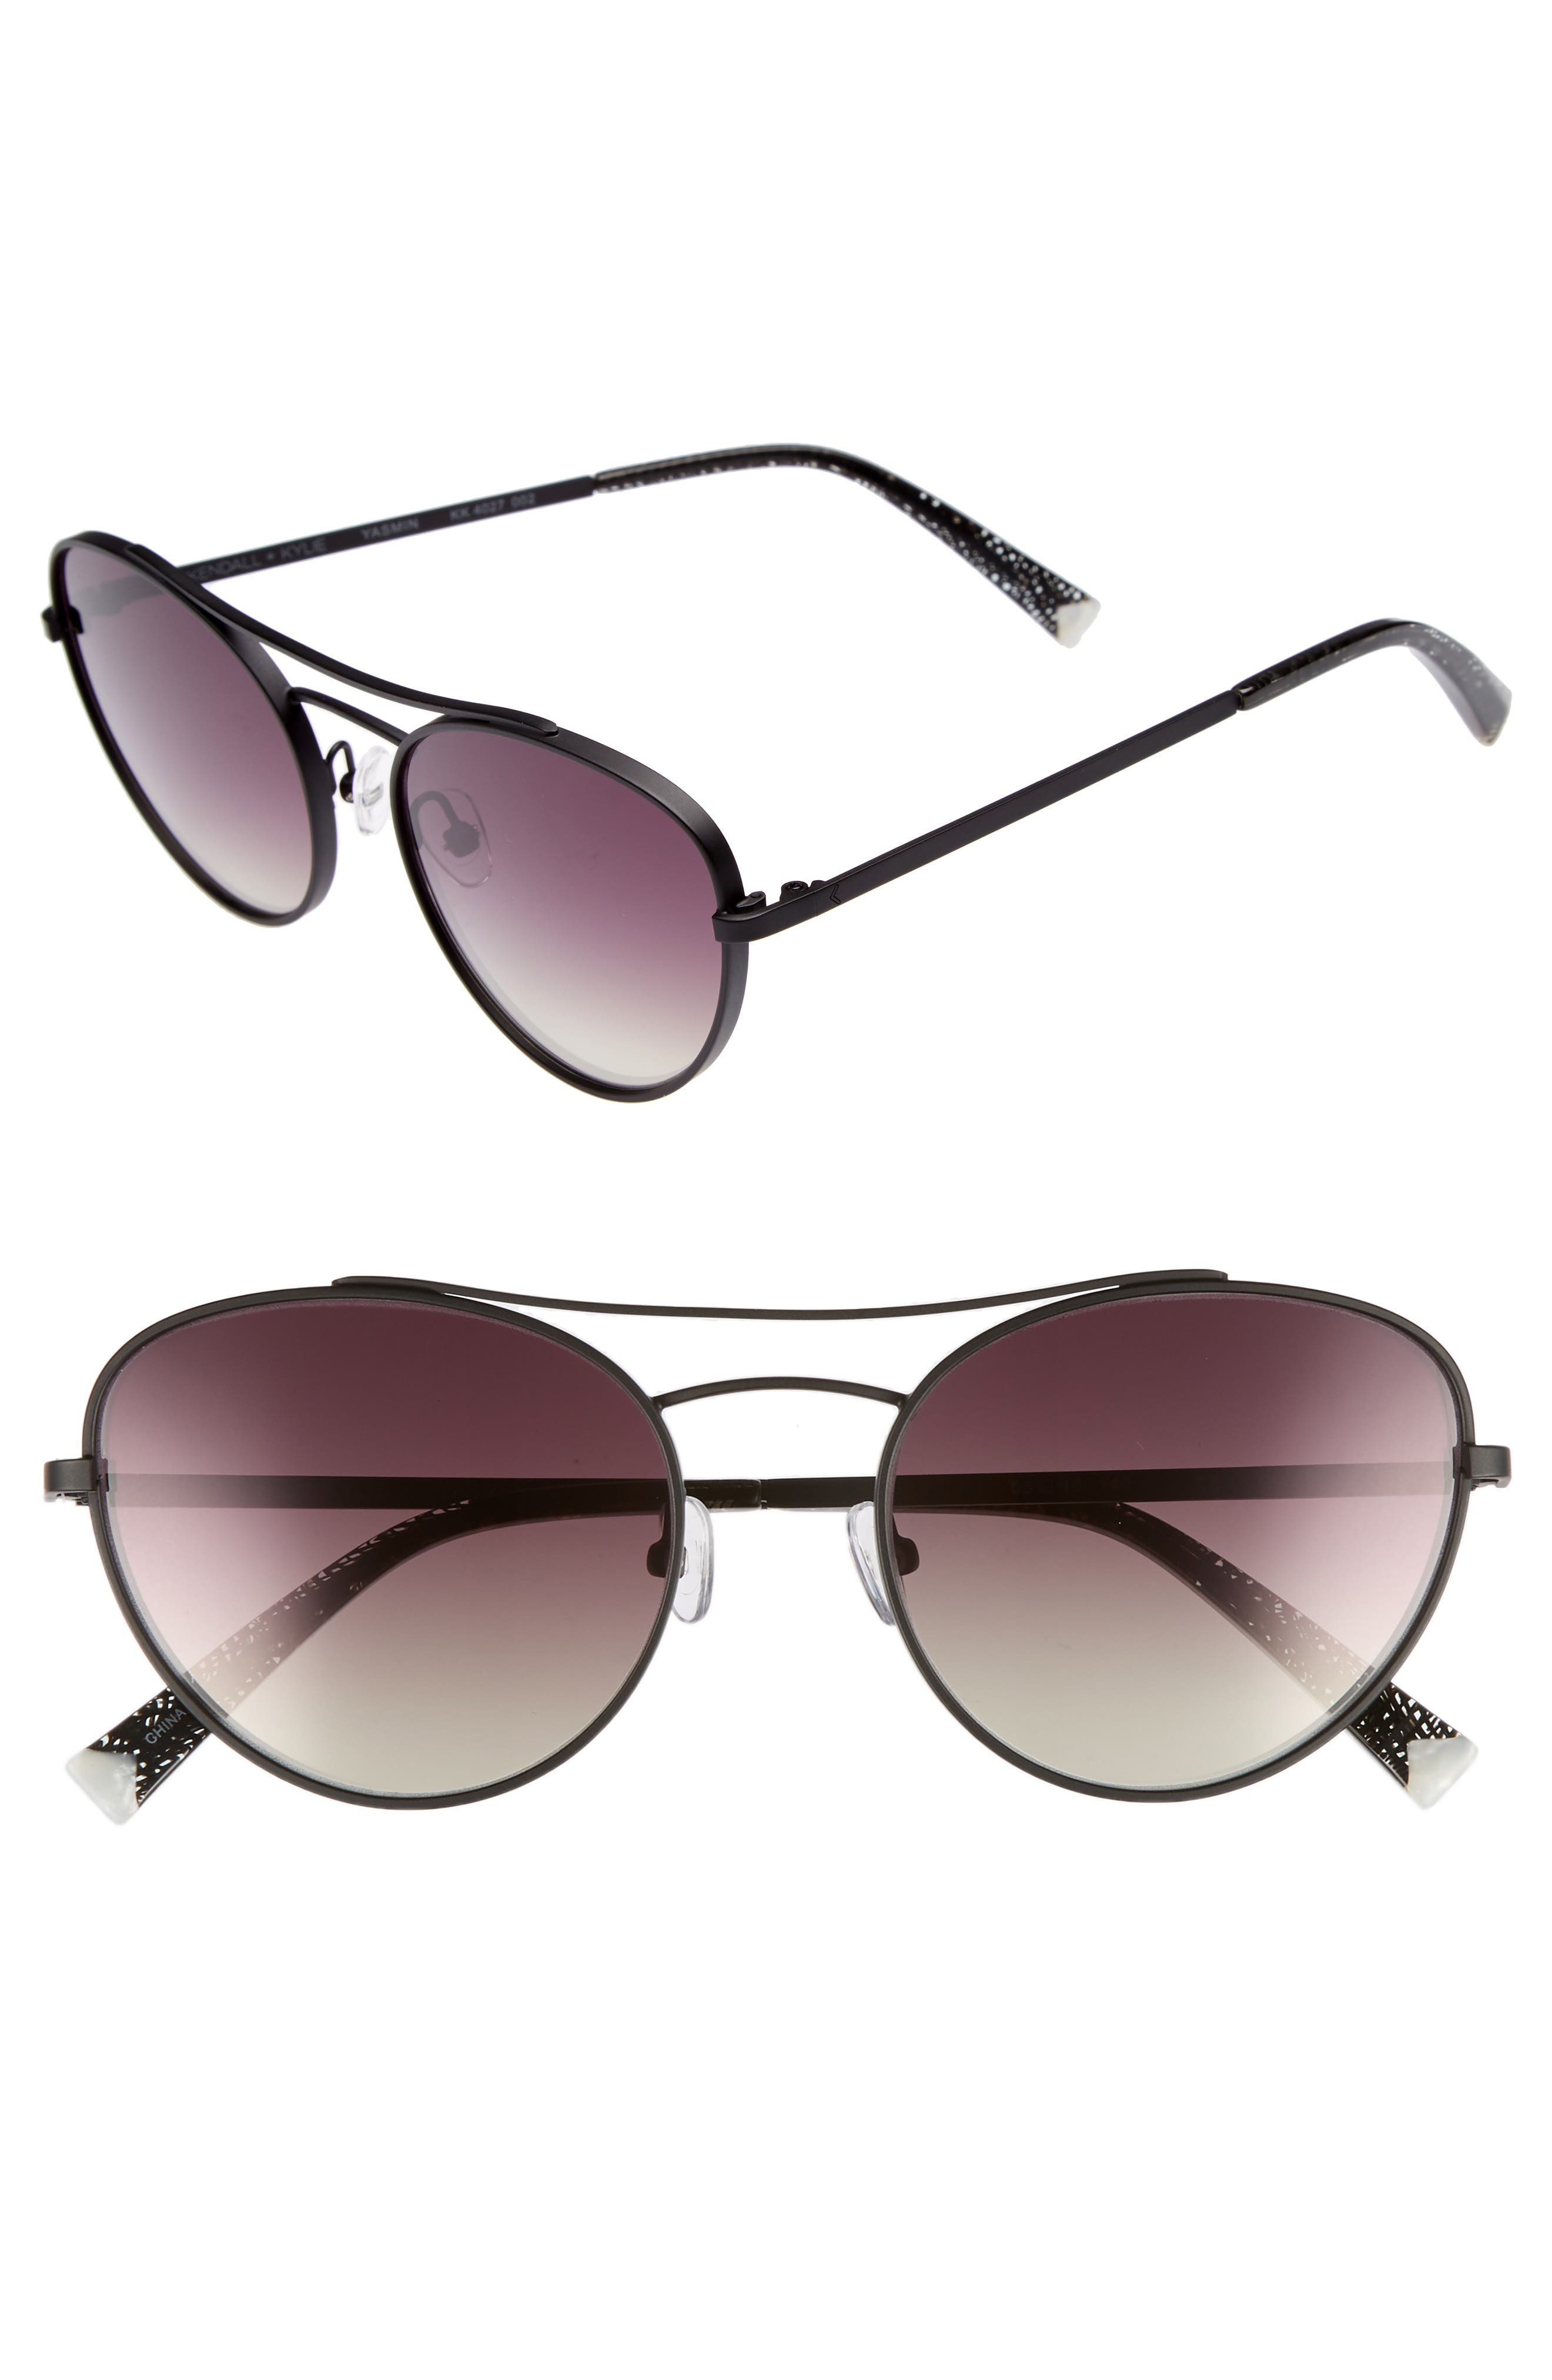 727b8026f22 Women s Sunglasses Sale